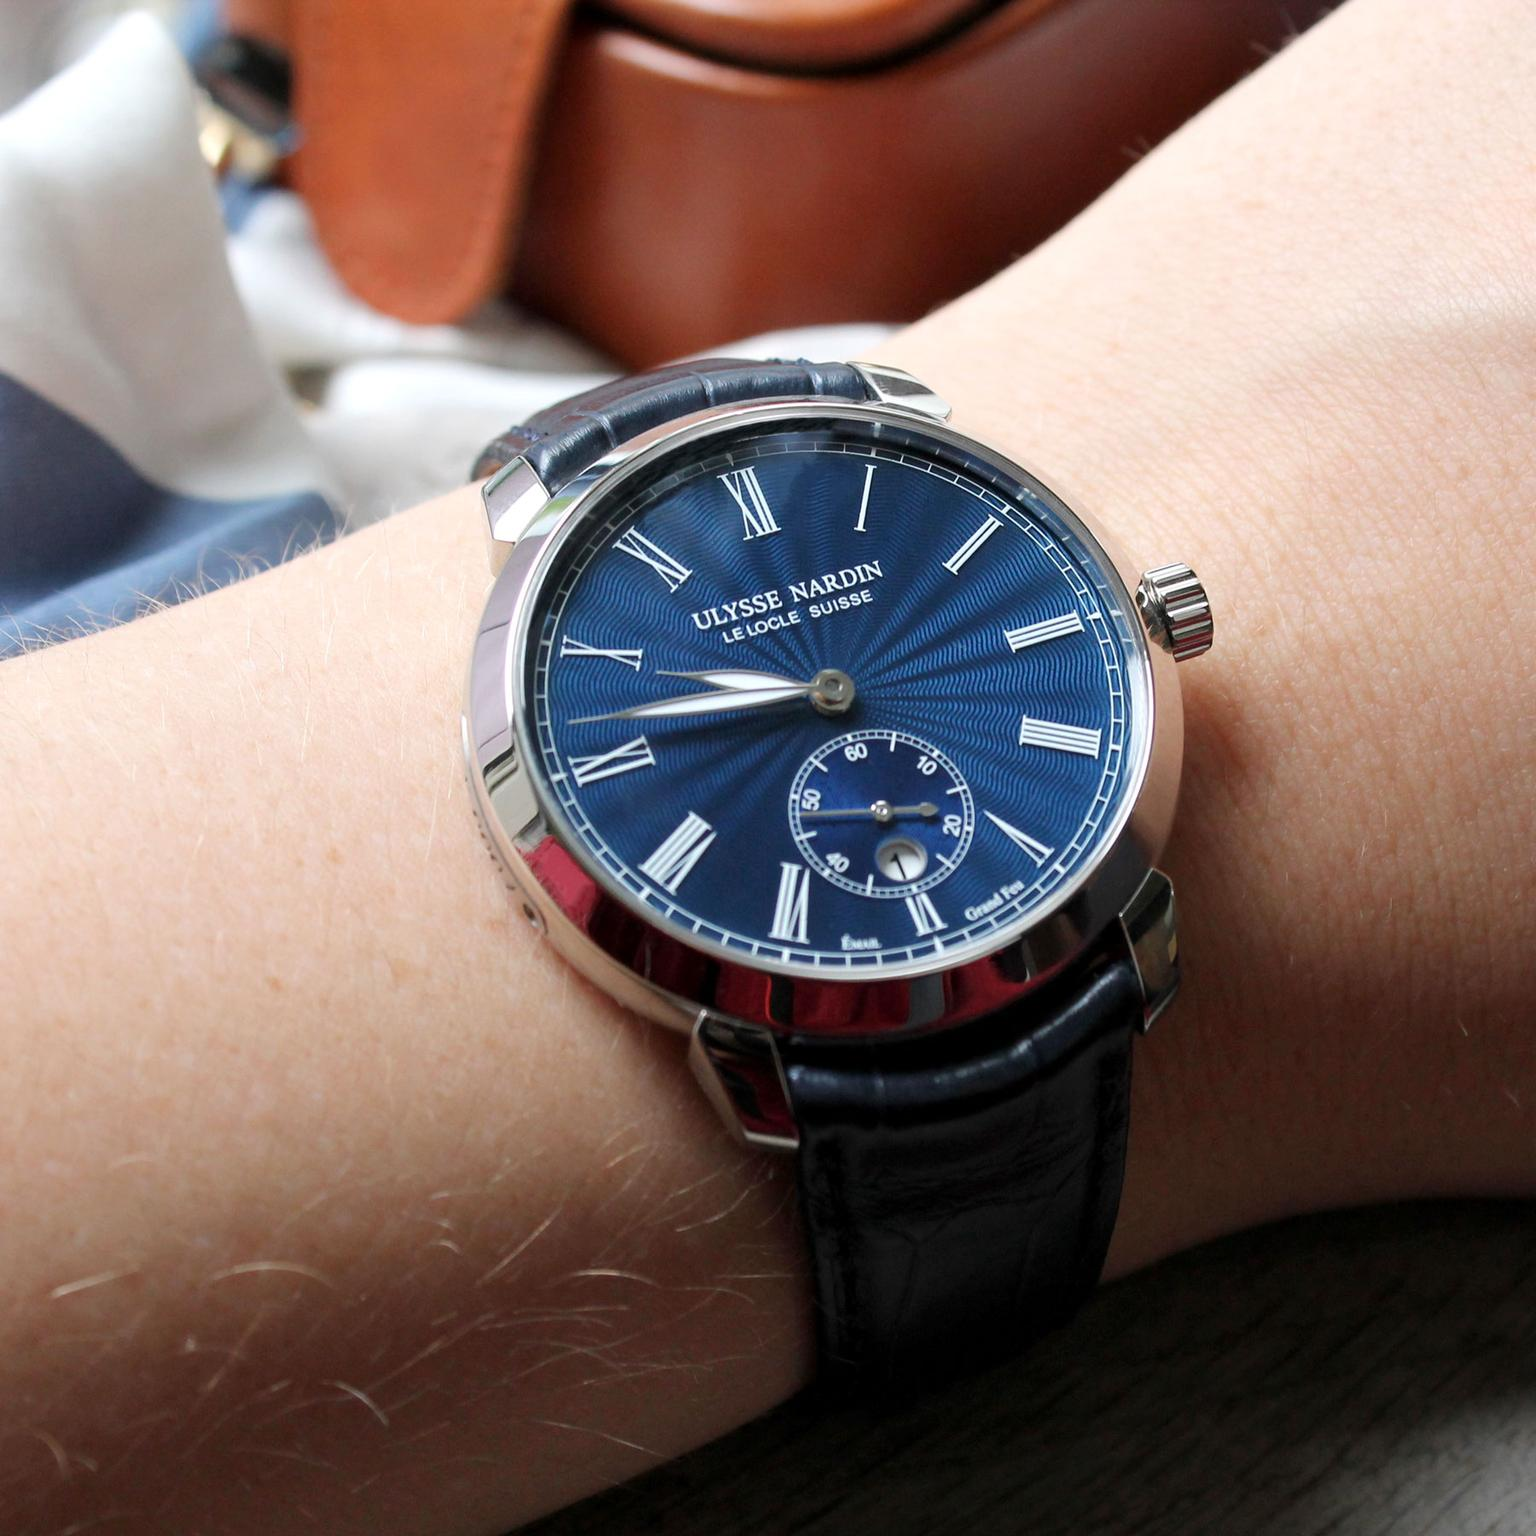 Ulysse Nardin Classico Small Second Manufacture watch